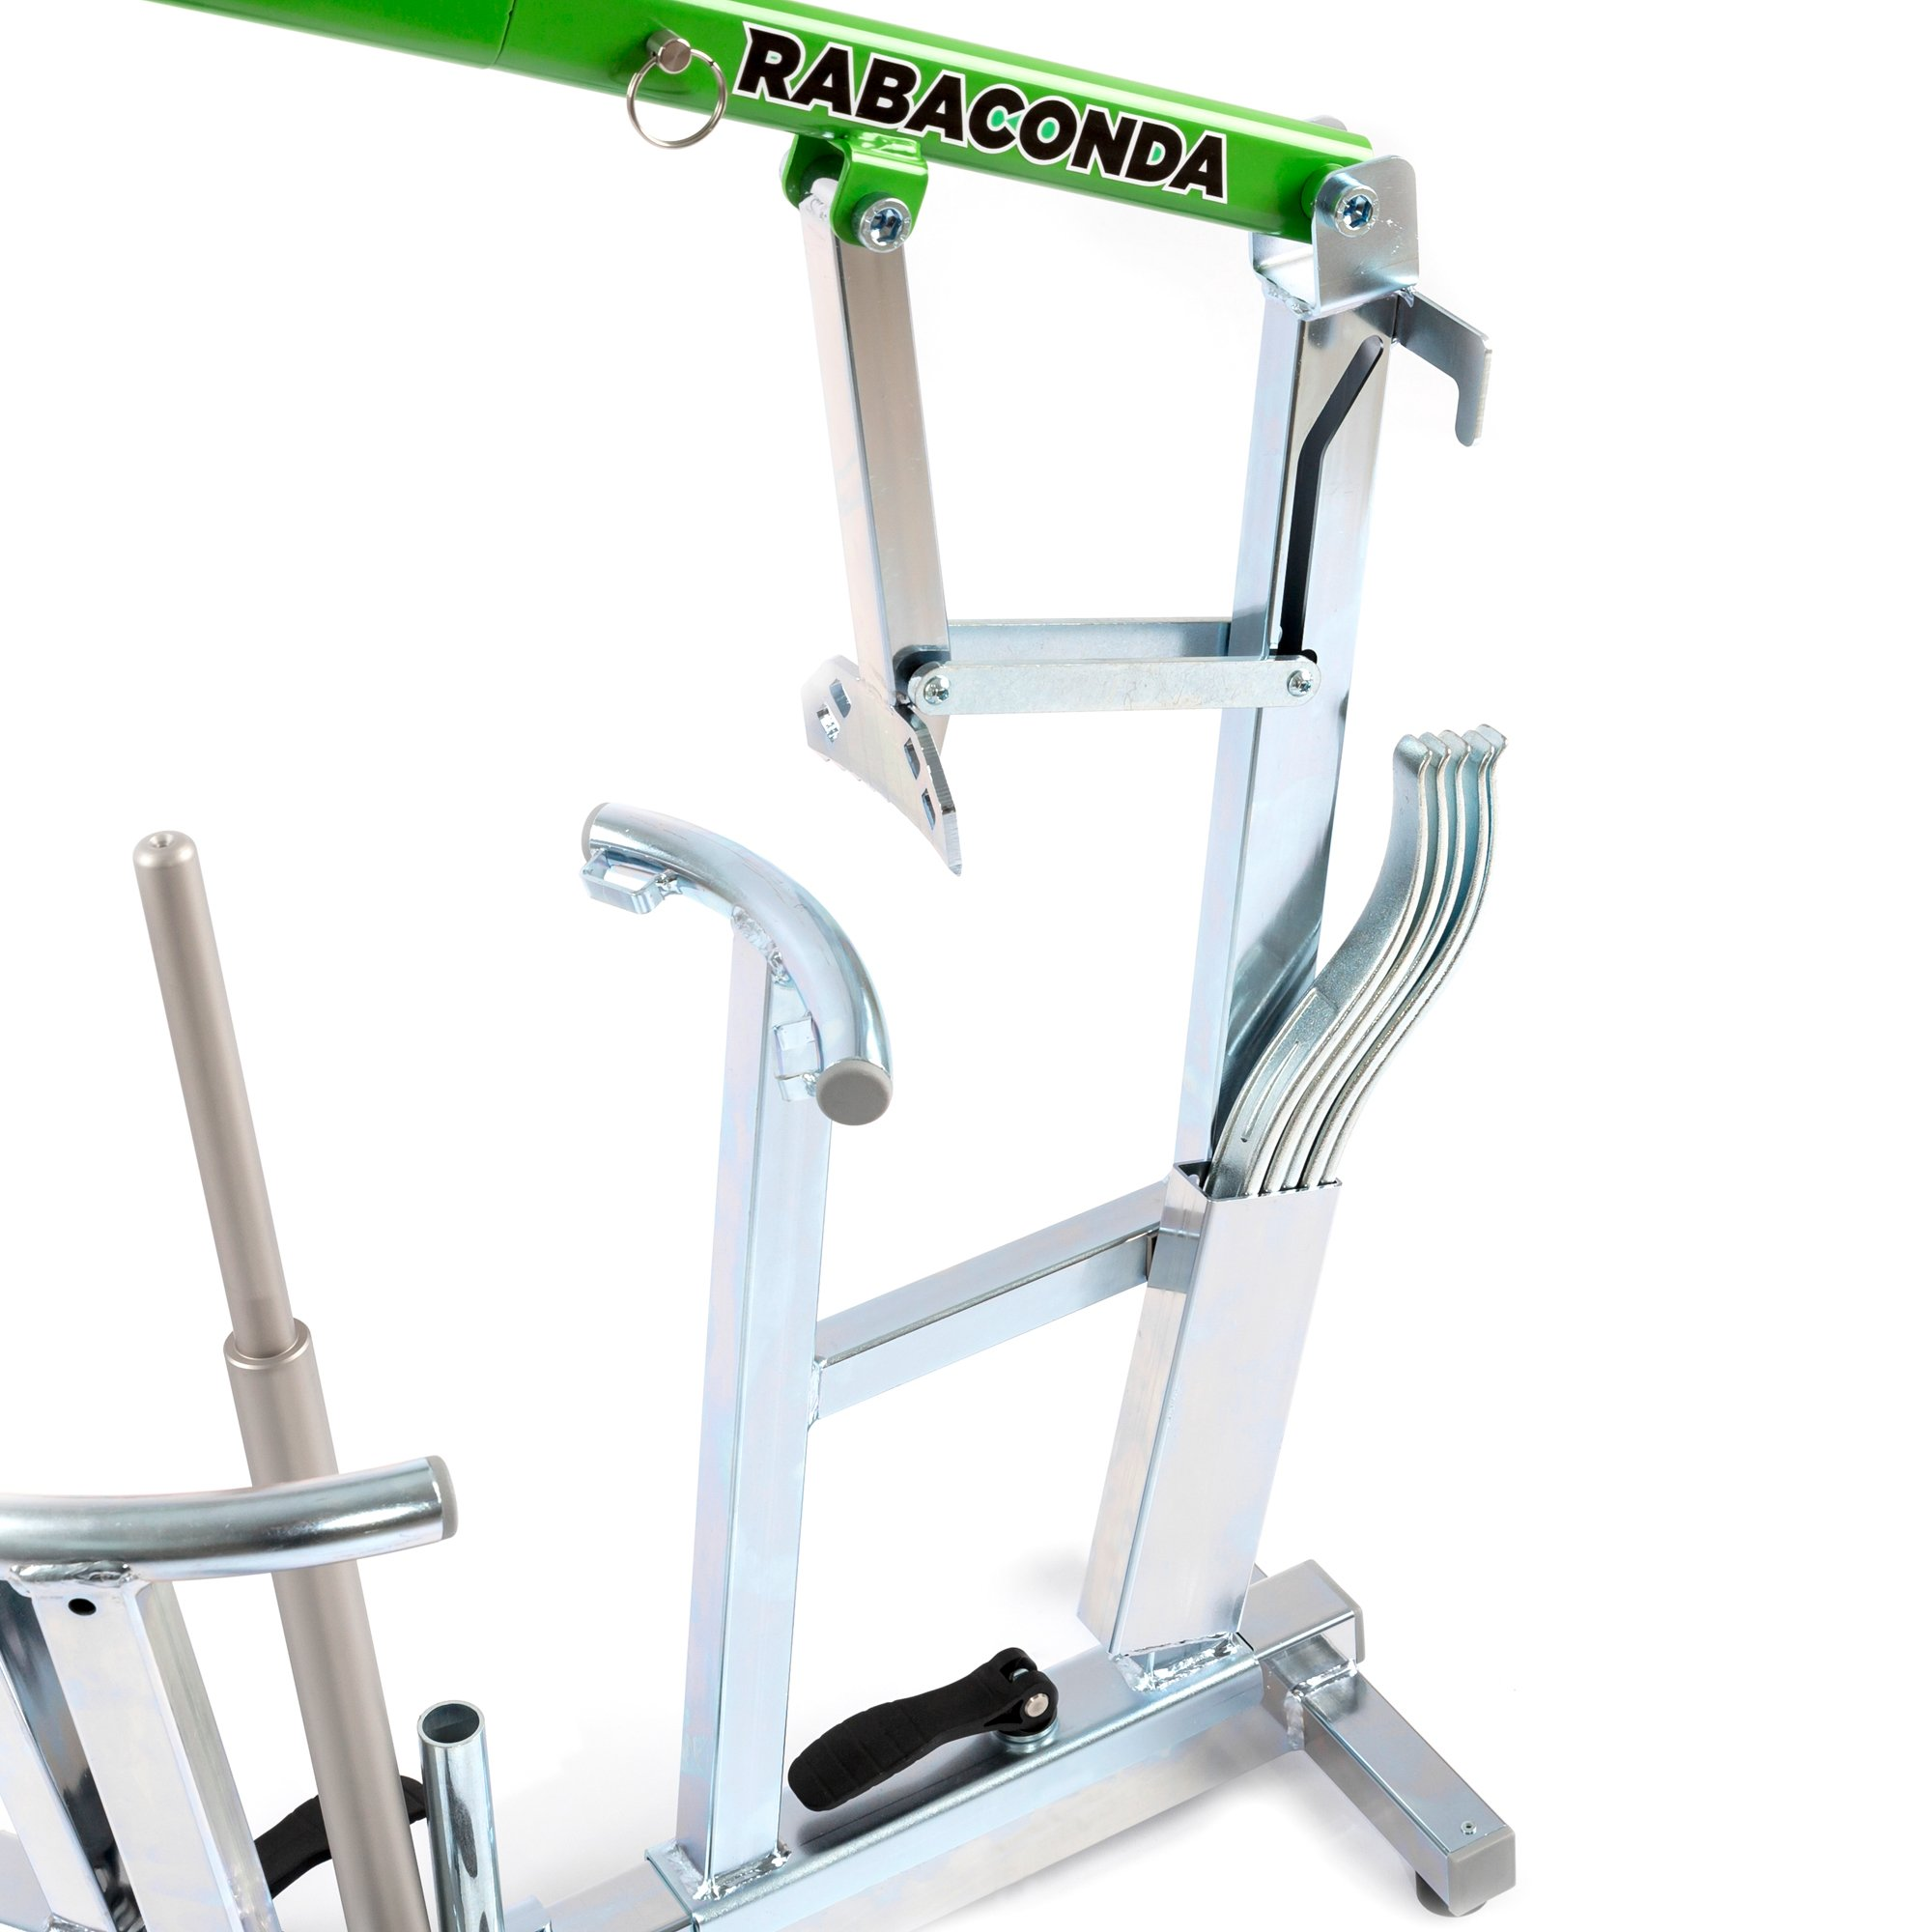 Rabaconda Motorcycle Tire Changer Machine - Fastest Tire Bead Breaker Among Motorcycle Tire Changing Tools by Rabaconda (Image #2)